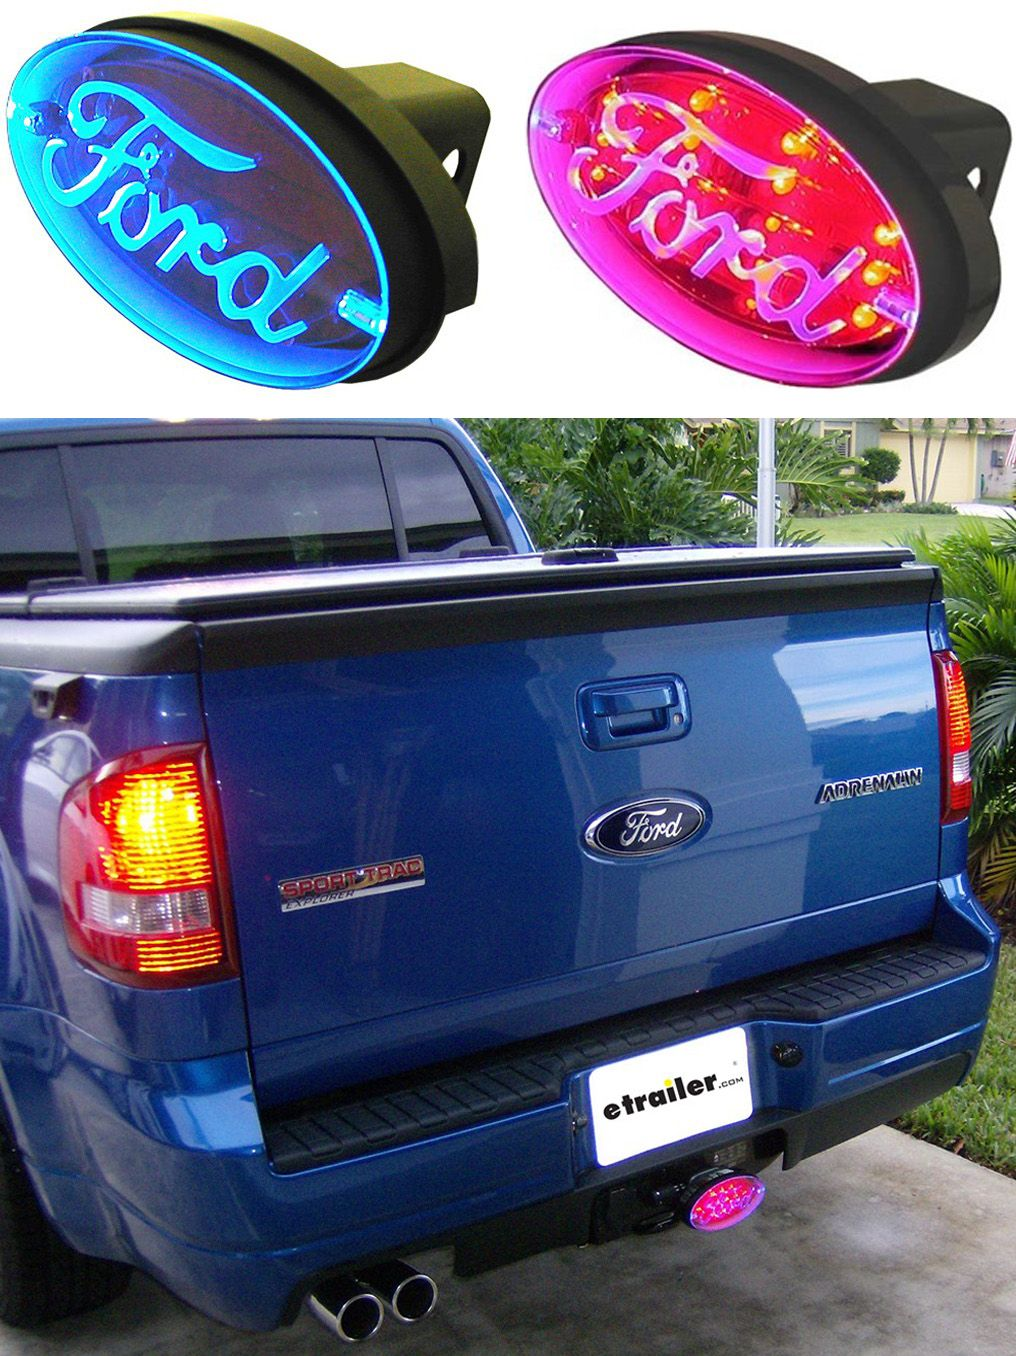 Ford Brake And Tail Light L E D Trailer Hitch Cover Pilot Automotive Hitch Covers Cr 017f Hitch Cover Trailer Hitch Cover Trailer Hitch